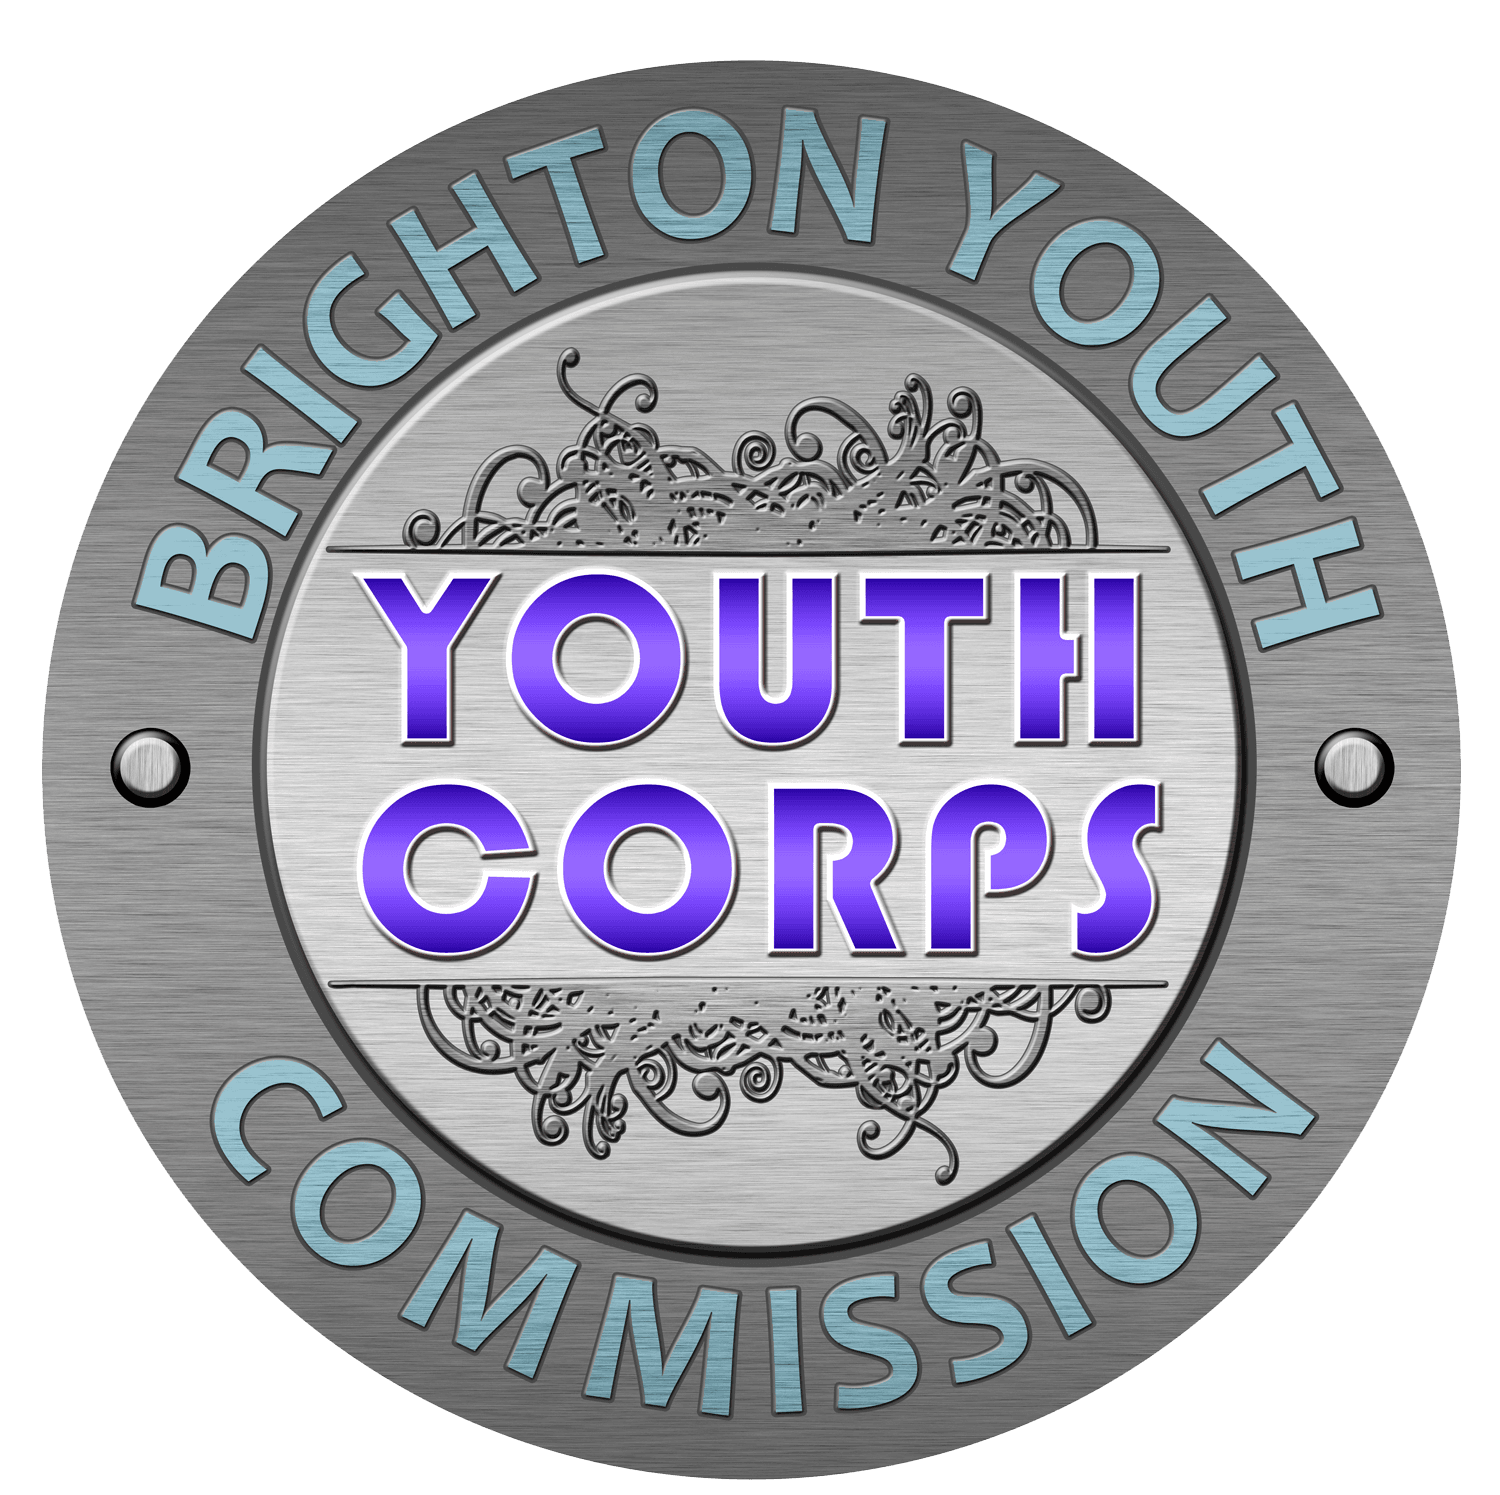 BYC_YouthCorps_Logo - Copy